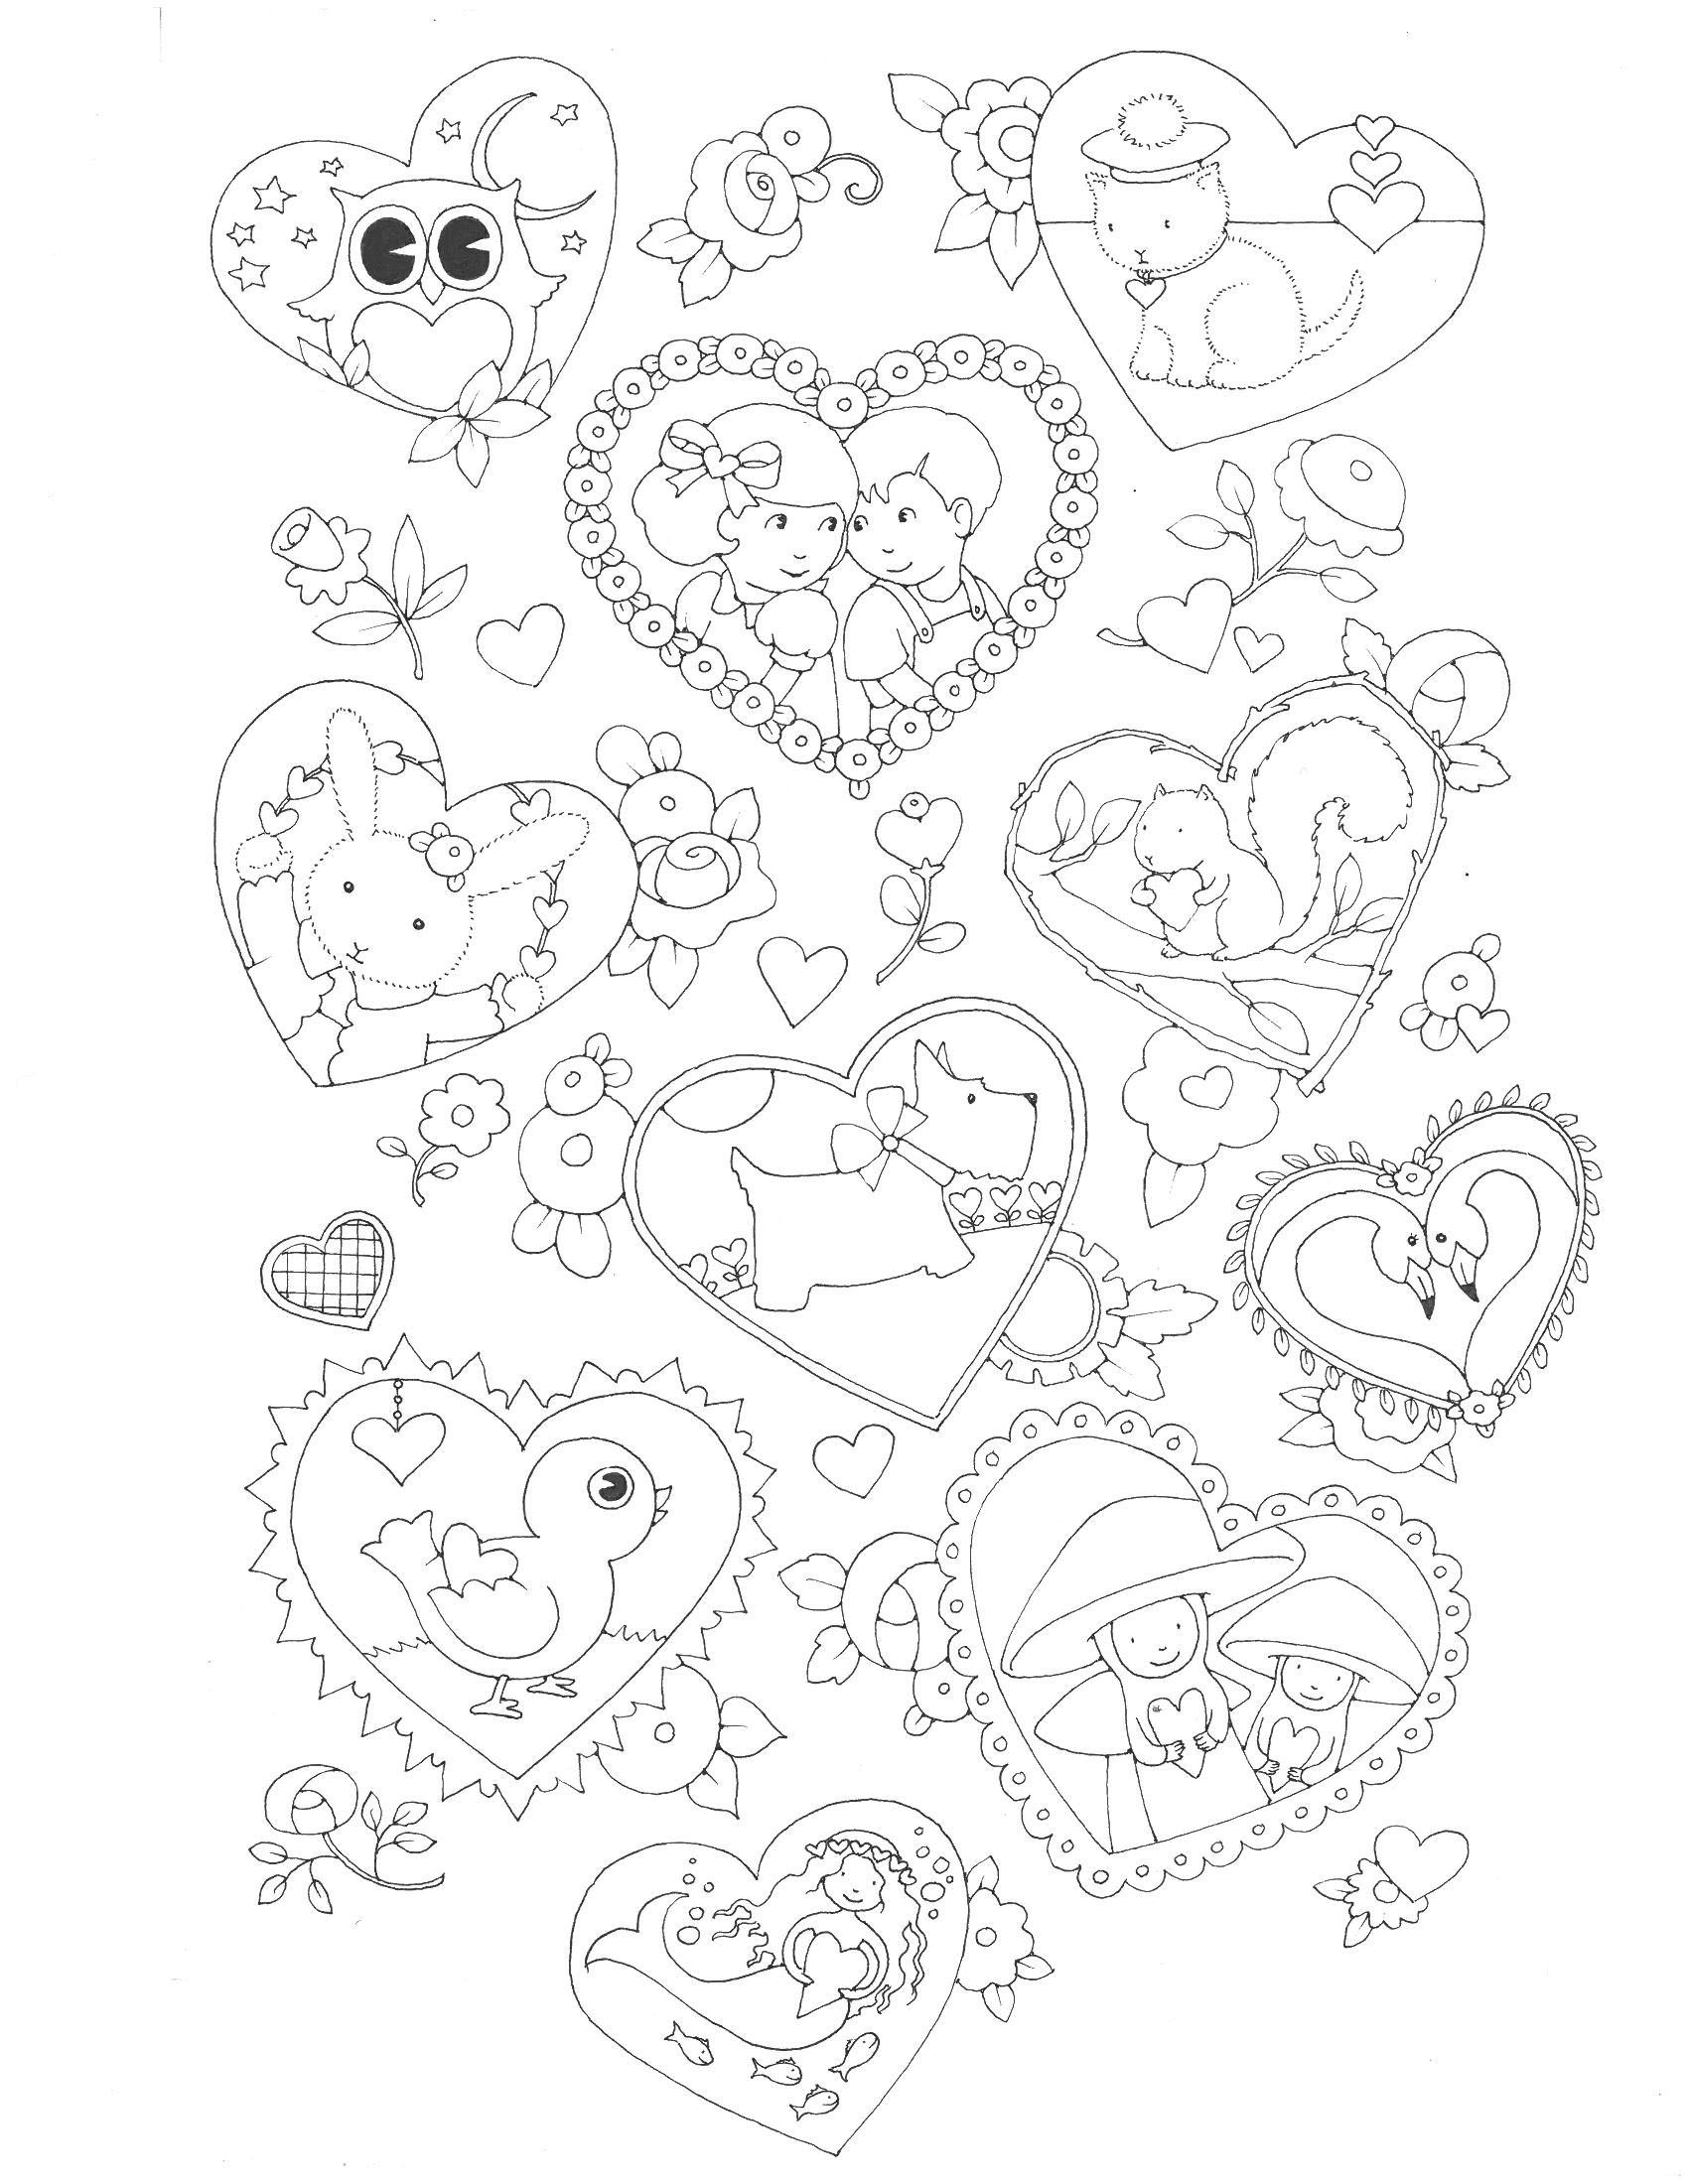 Nursery Rhymes Printables Coloring Pages At Getcolorings